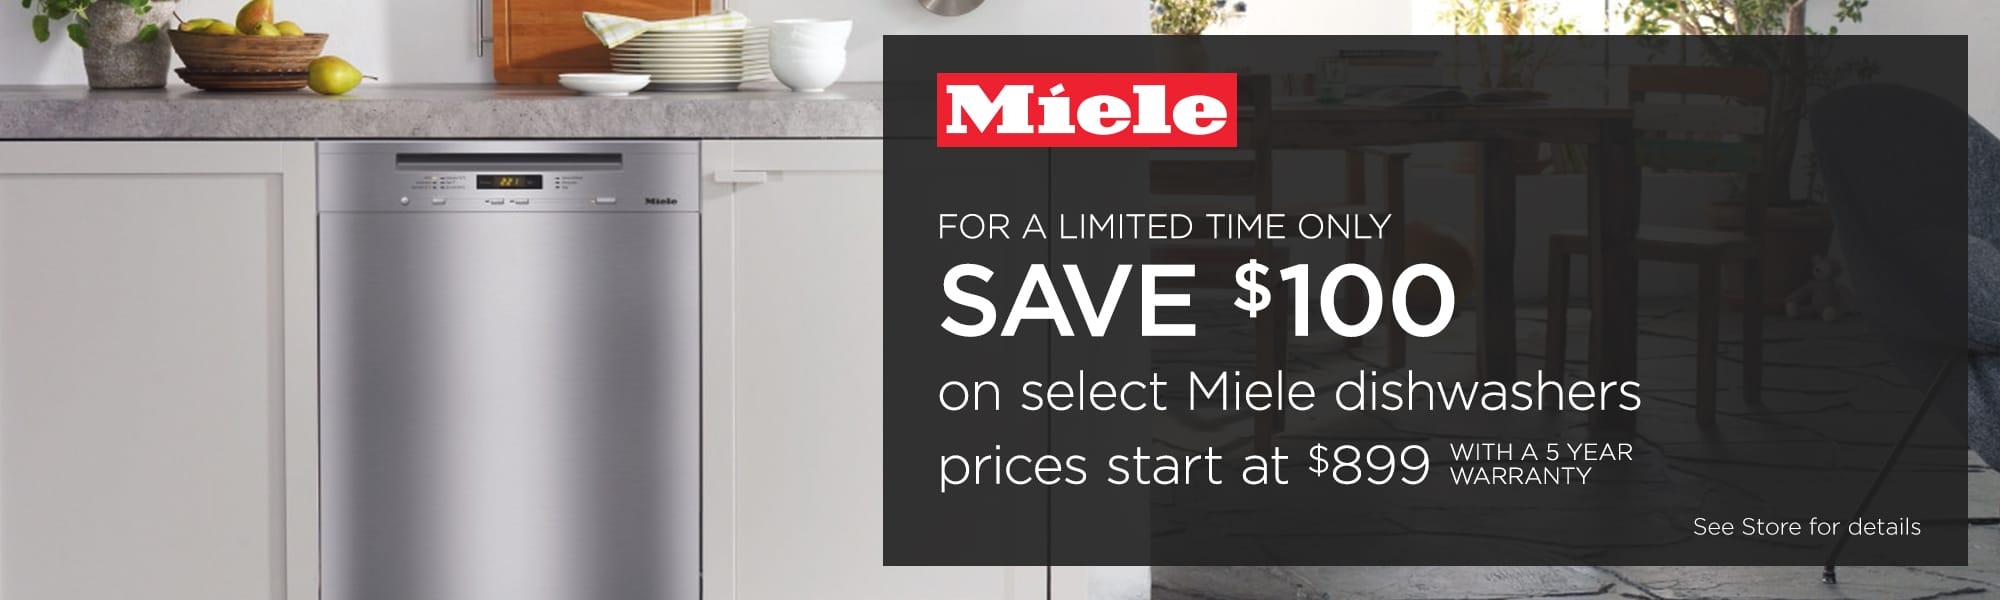 Miele 100 off banner